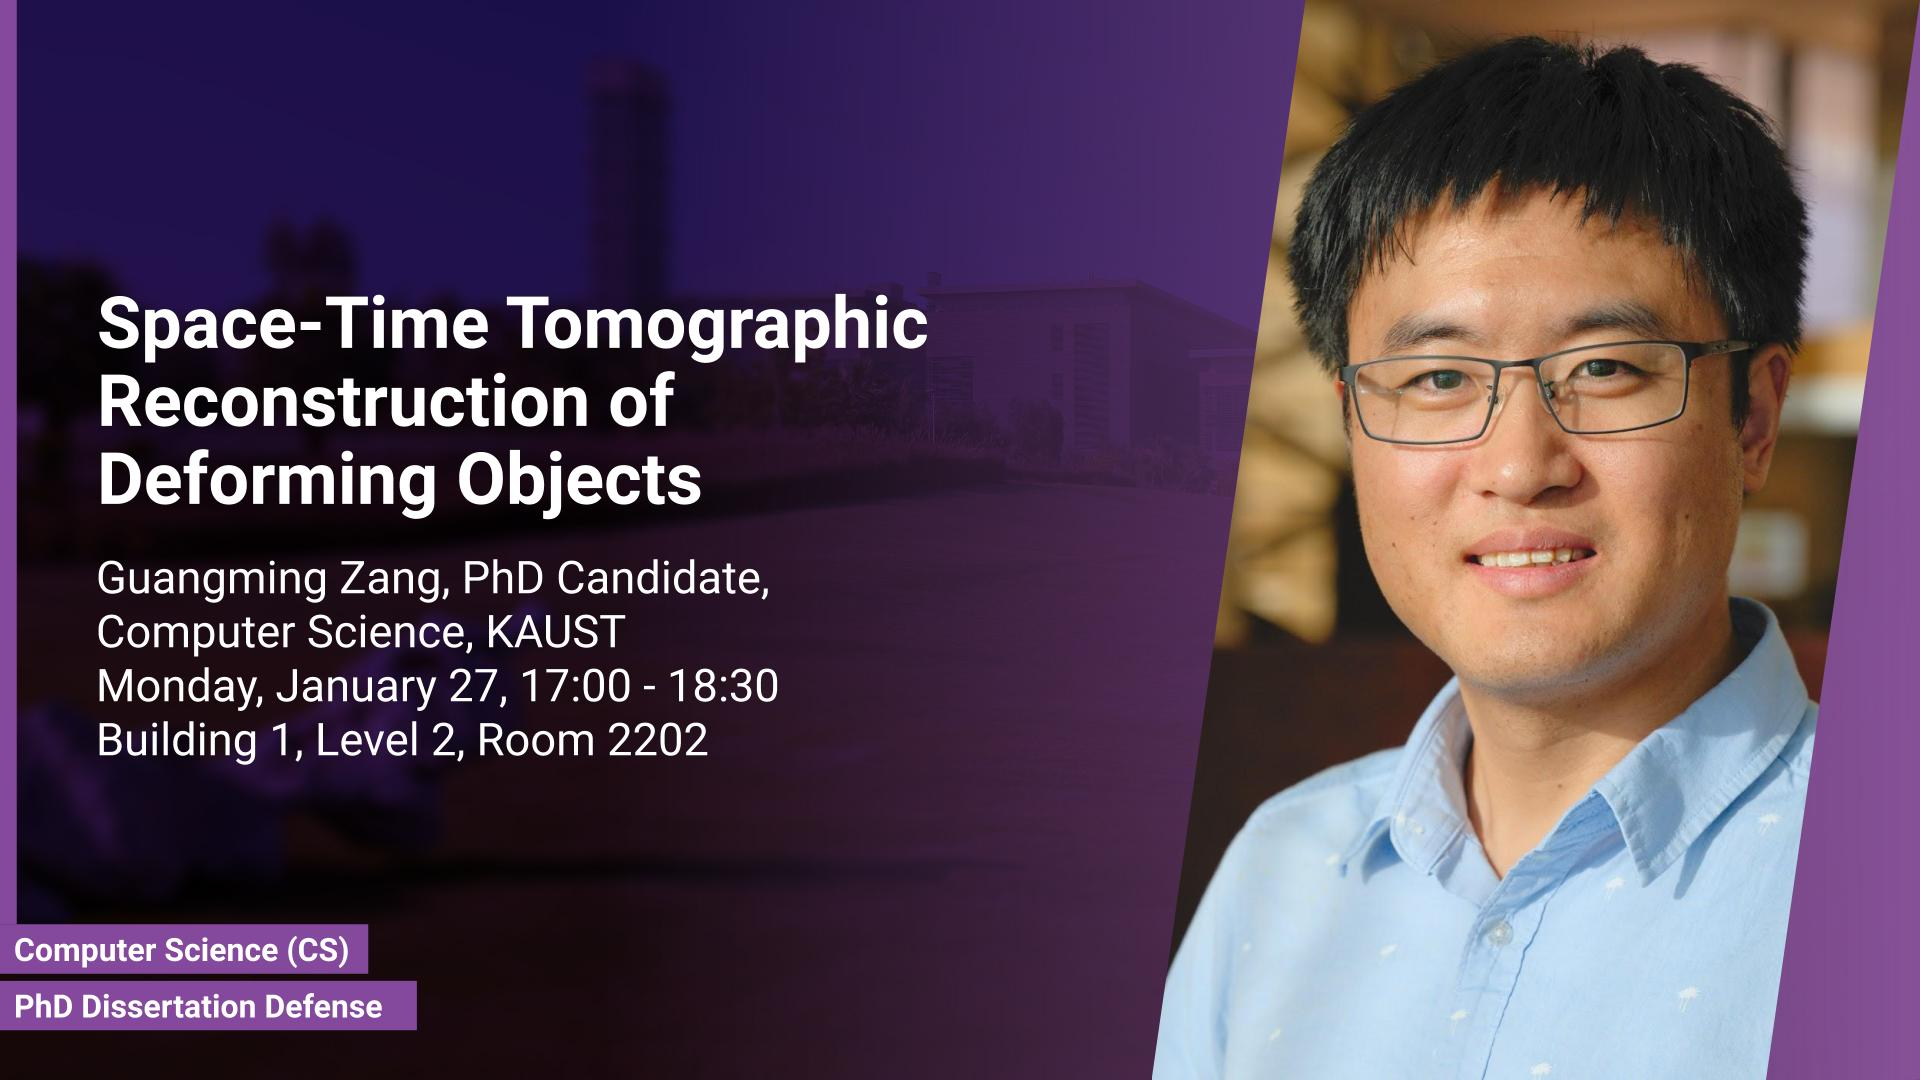 KAUST CEMSE CS PhD Dissertation Defense Guangming Zang Space Time Tomographic Reconstruction of Deforming Objects